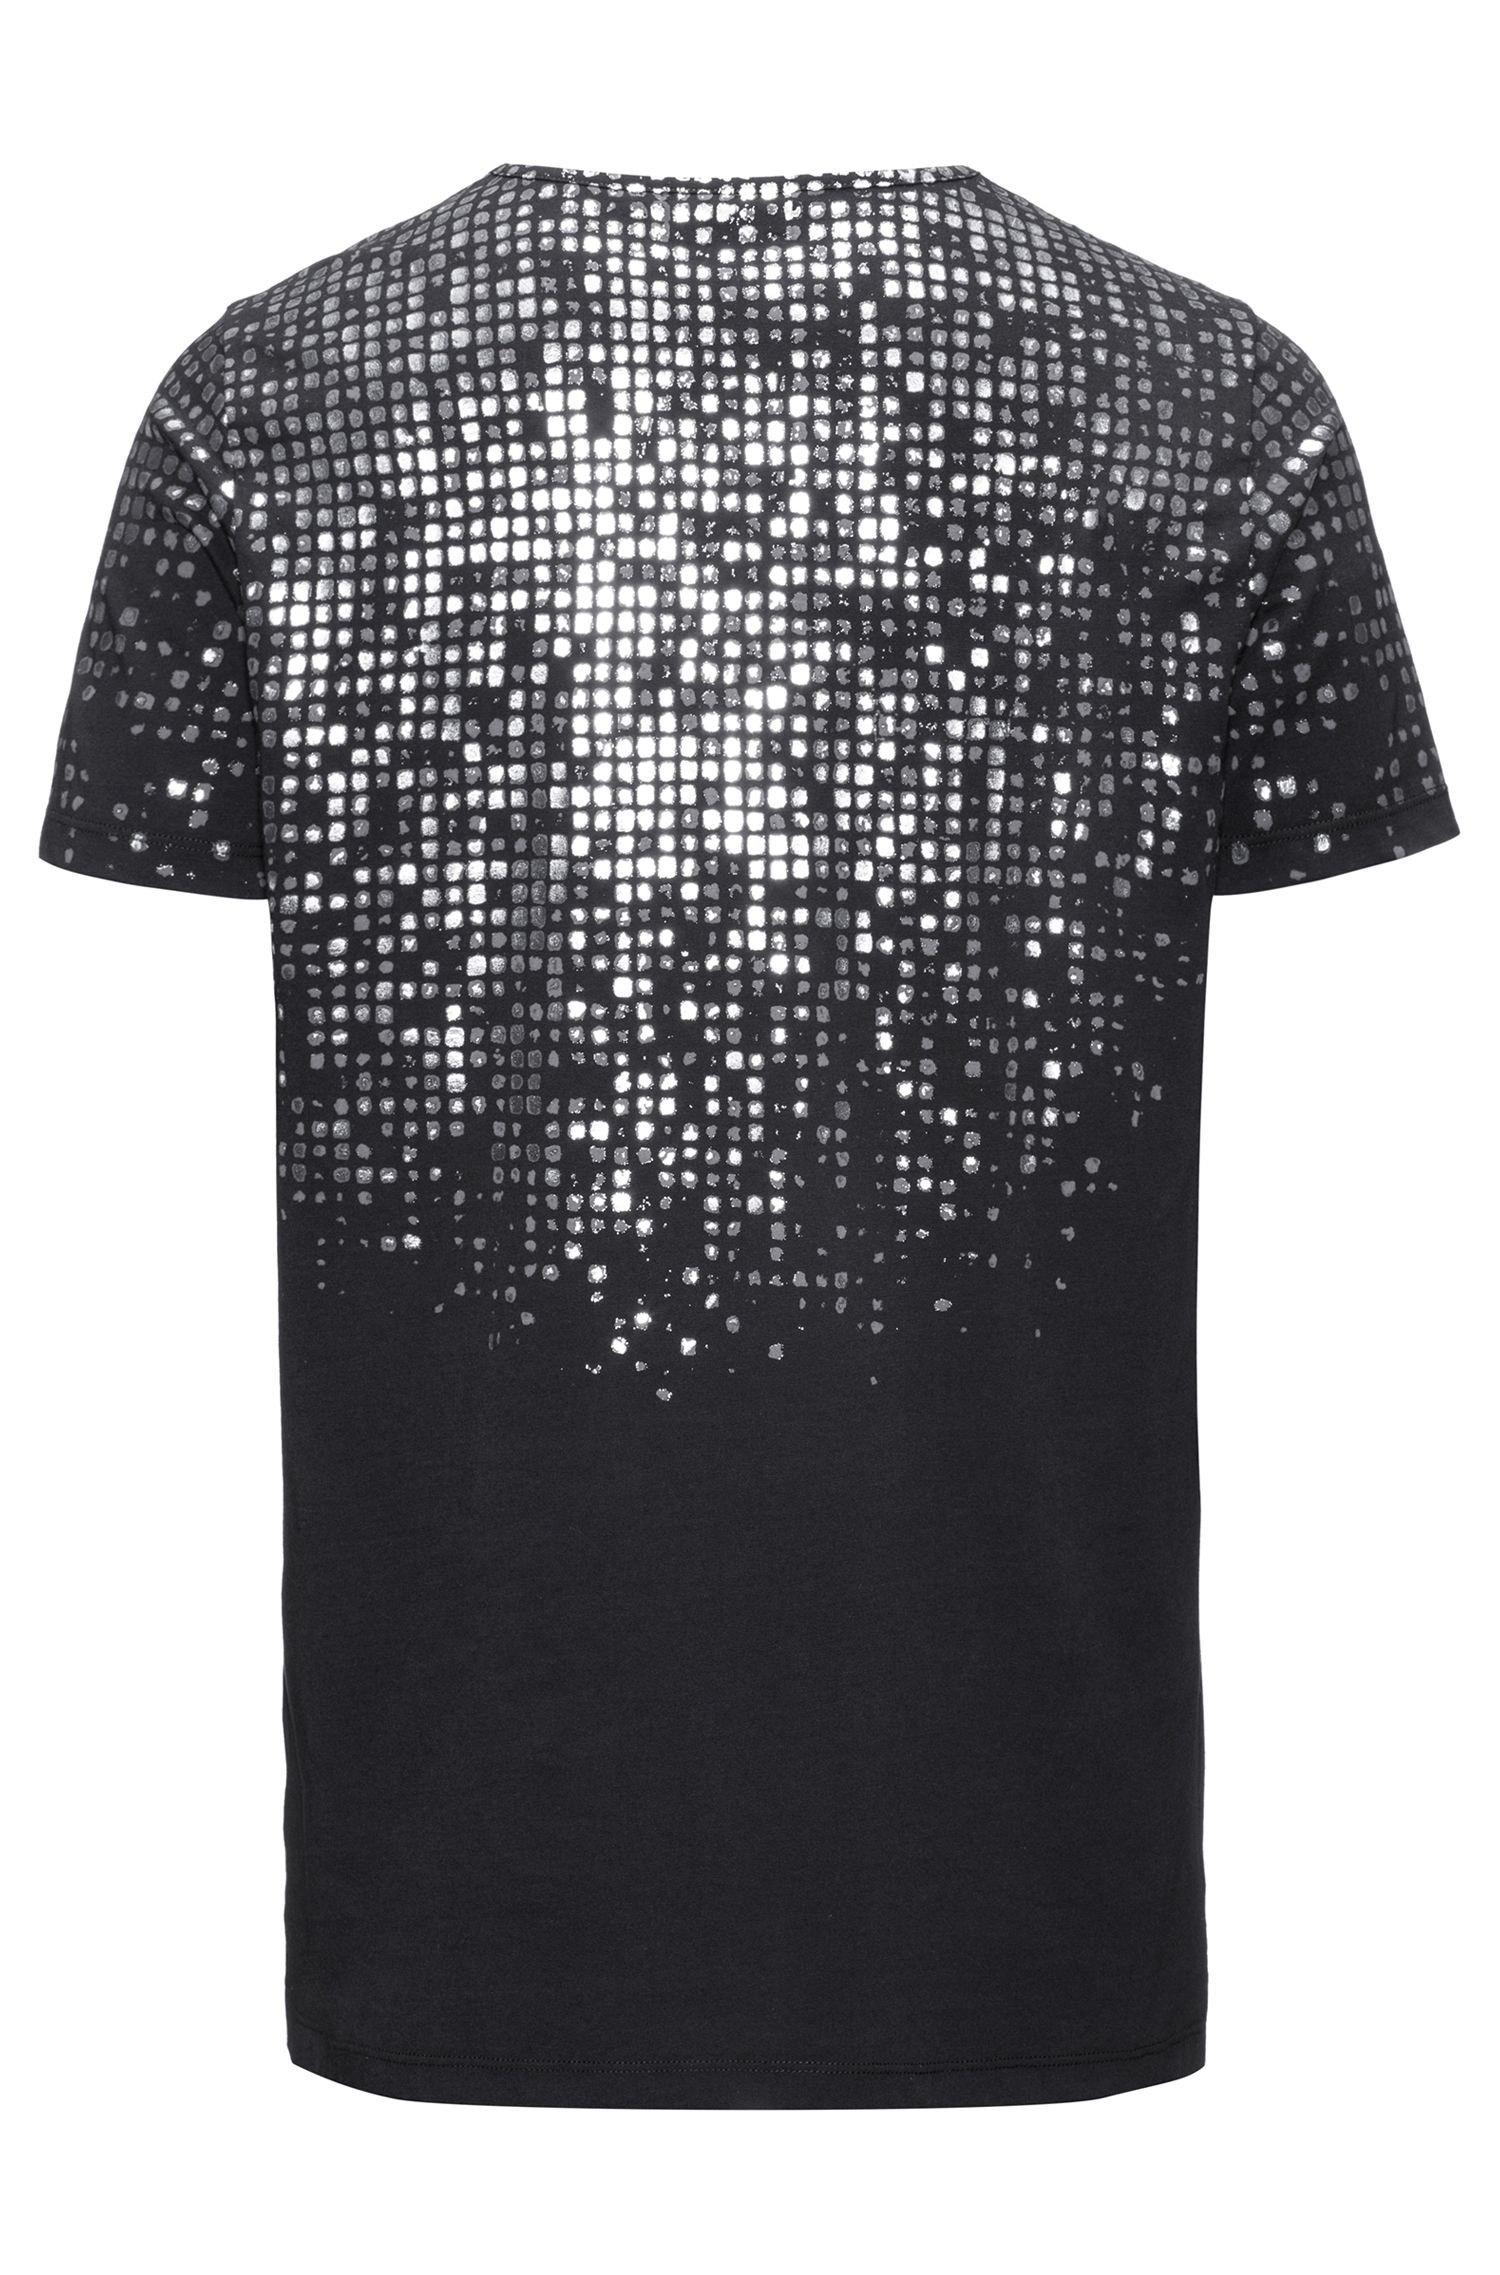 Foil-Print Cotton T-Shirt | Dilver, Black